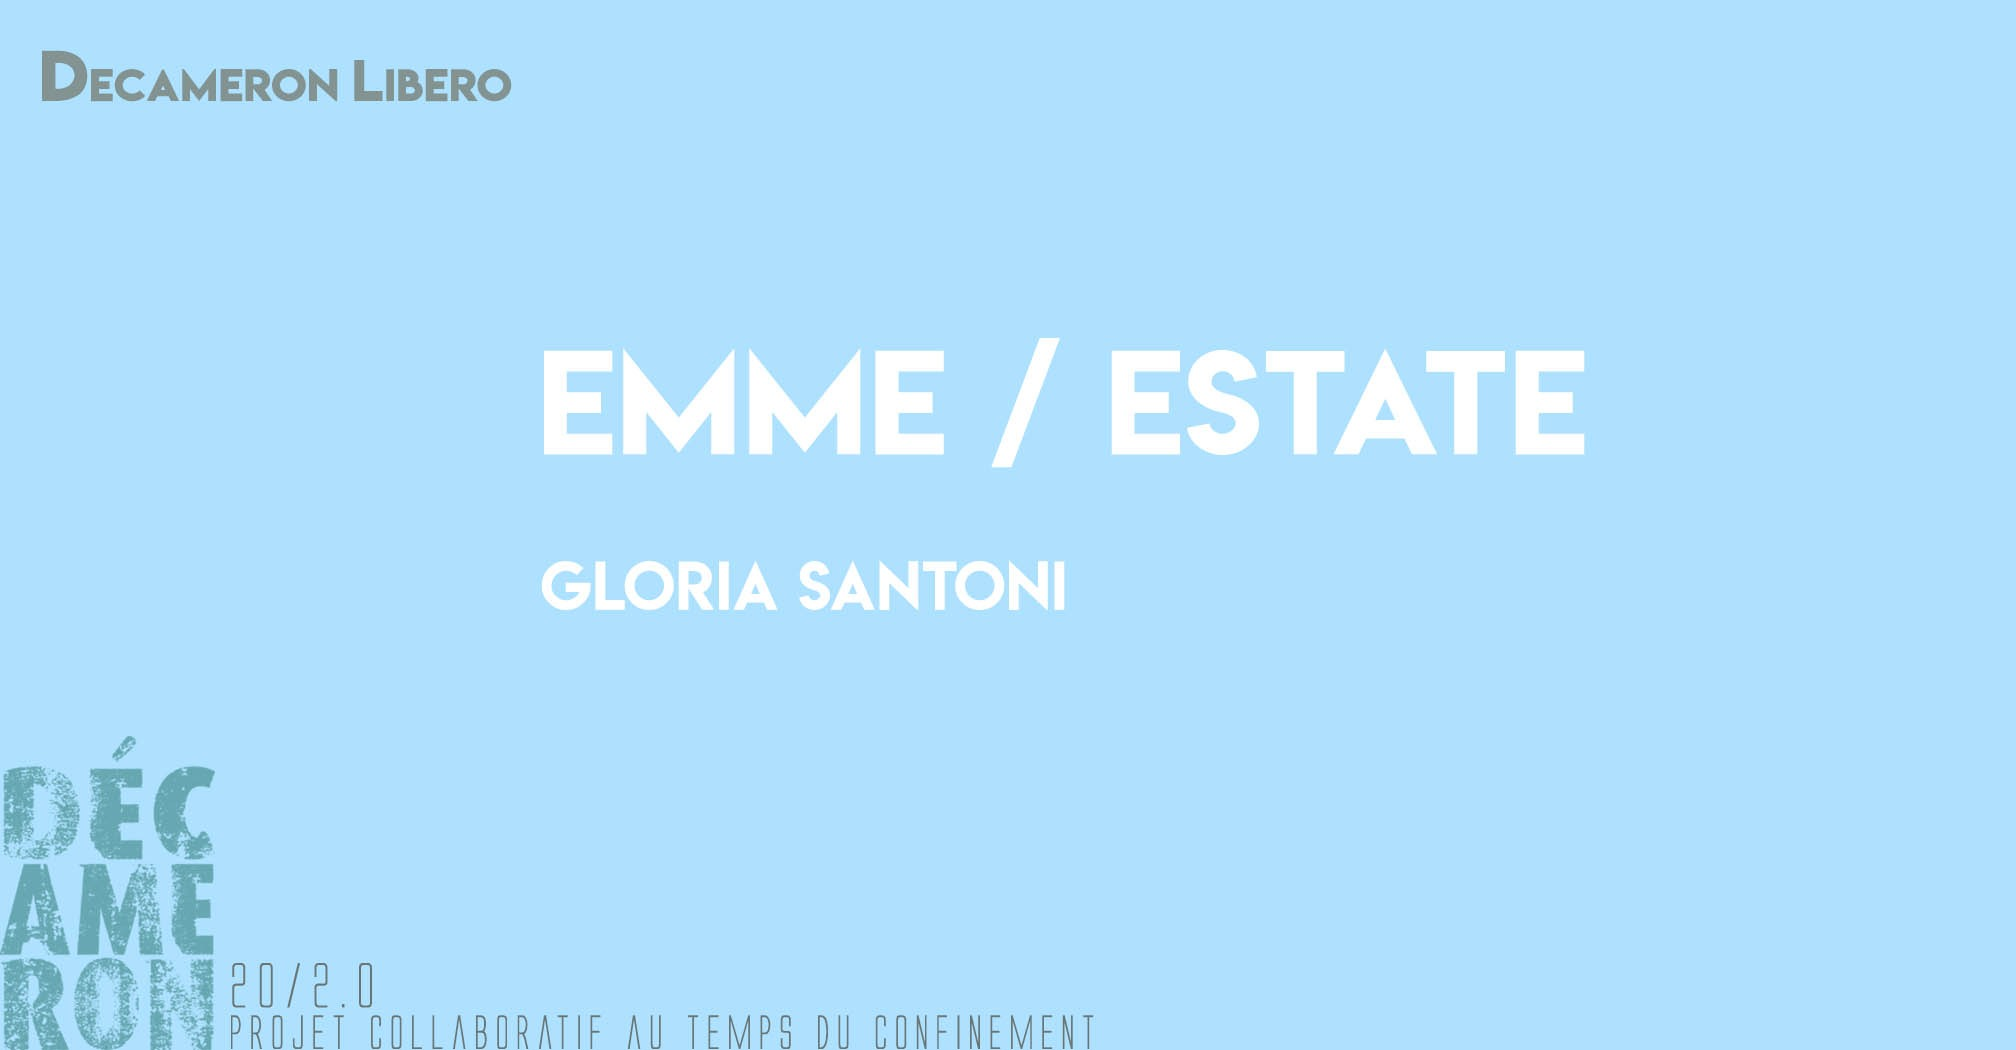 Emme / Estate - Gloria Santoni